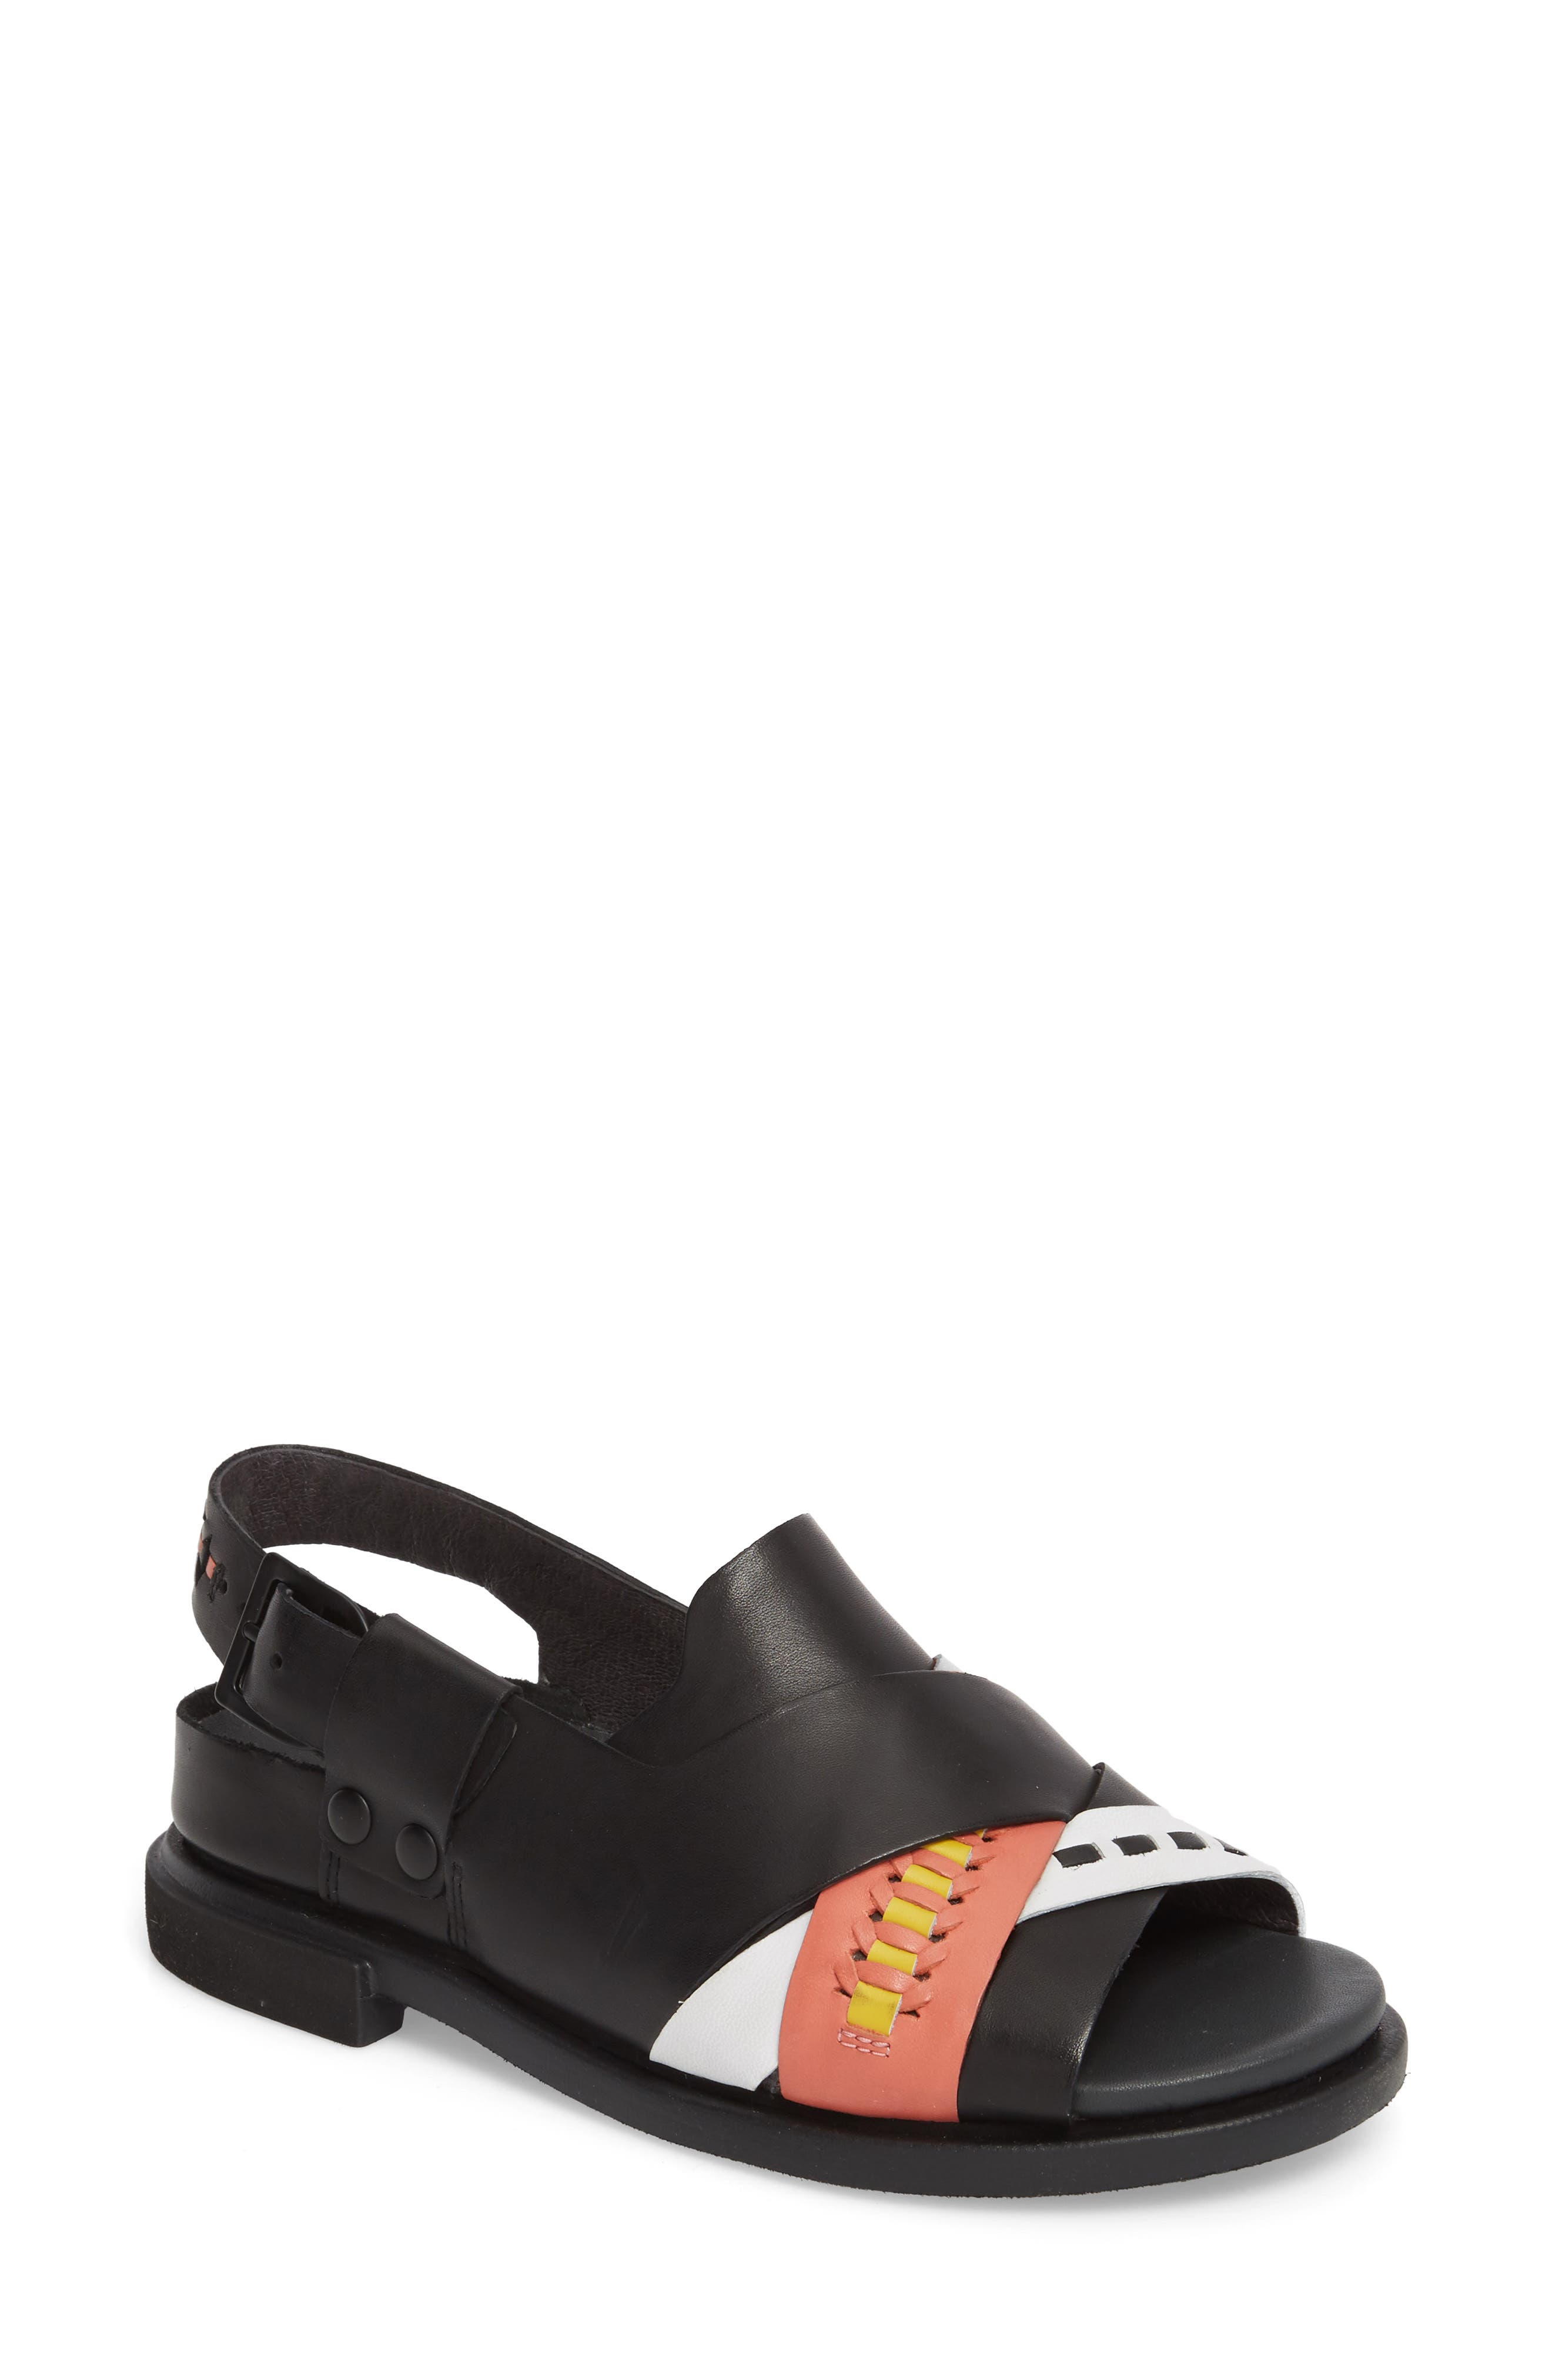 Twins Slingback Sandal,                         Main,                         color,